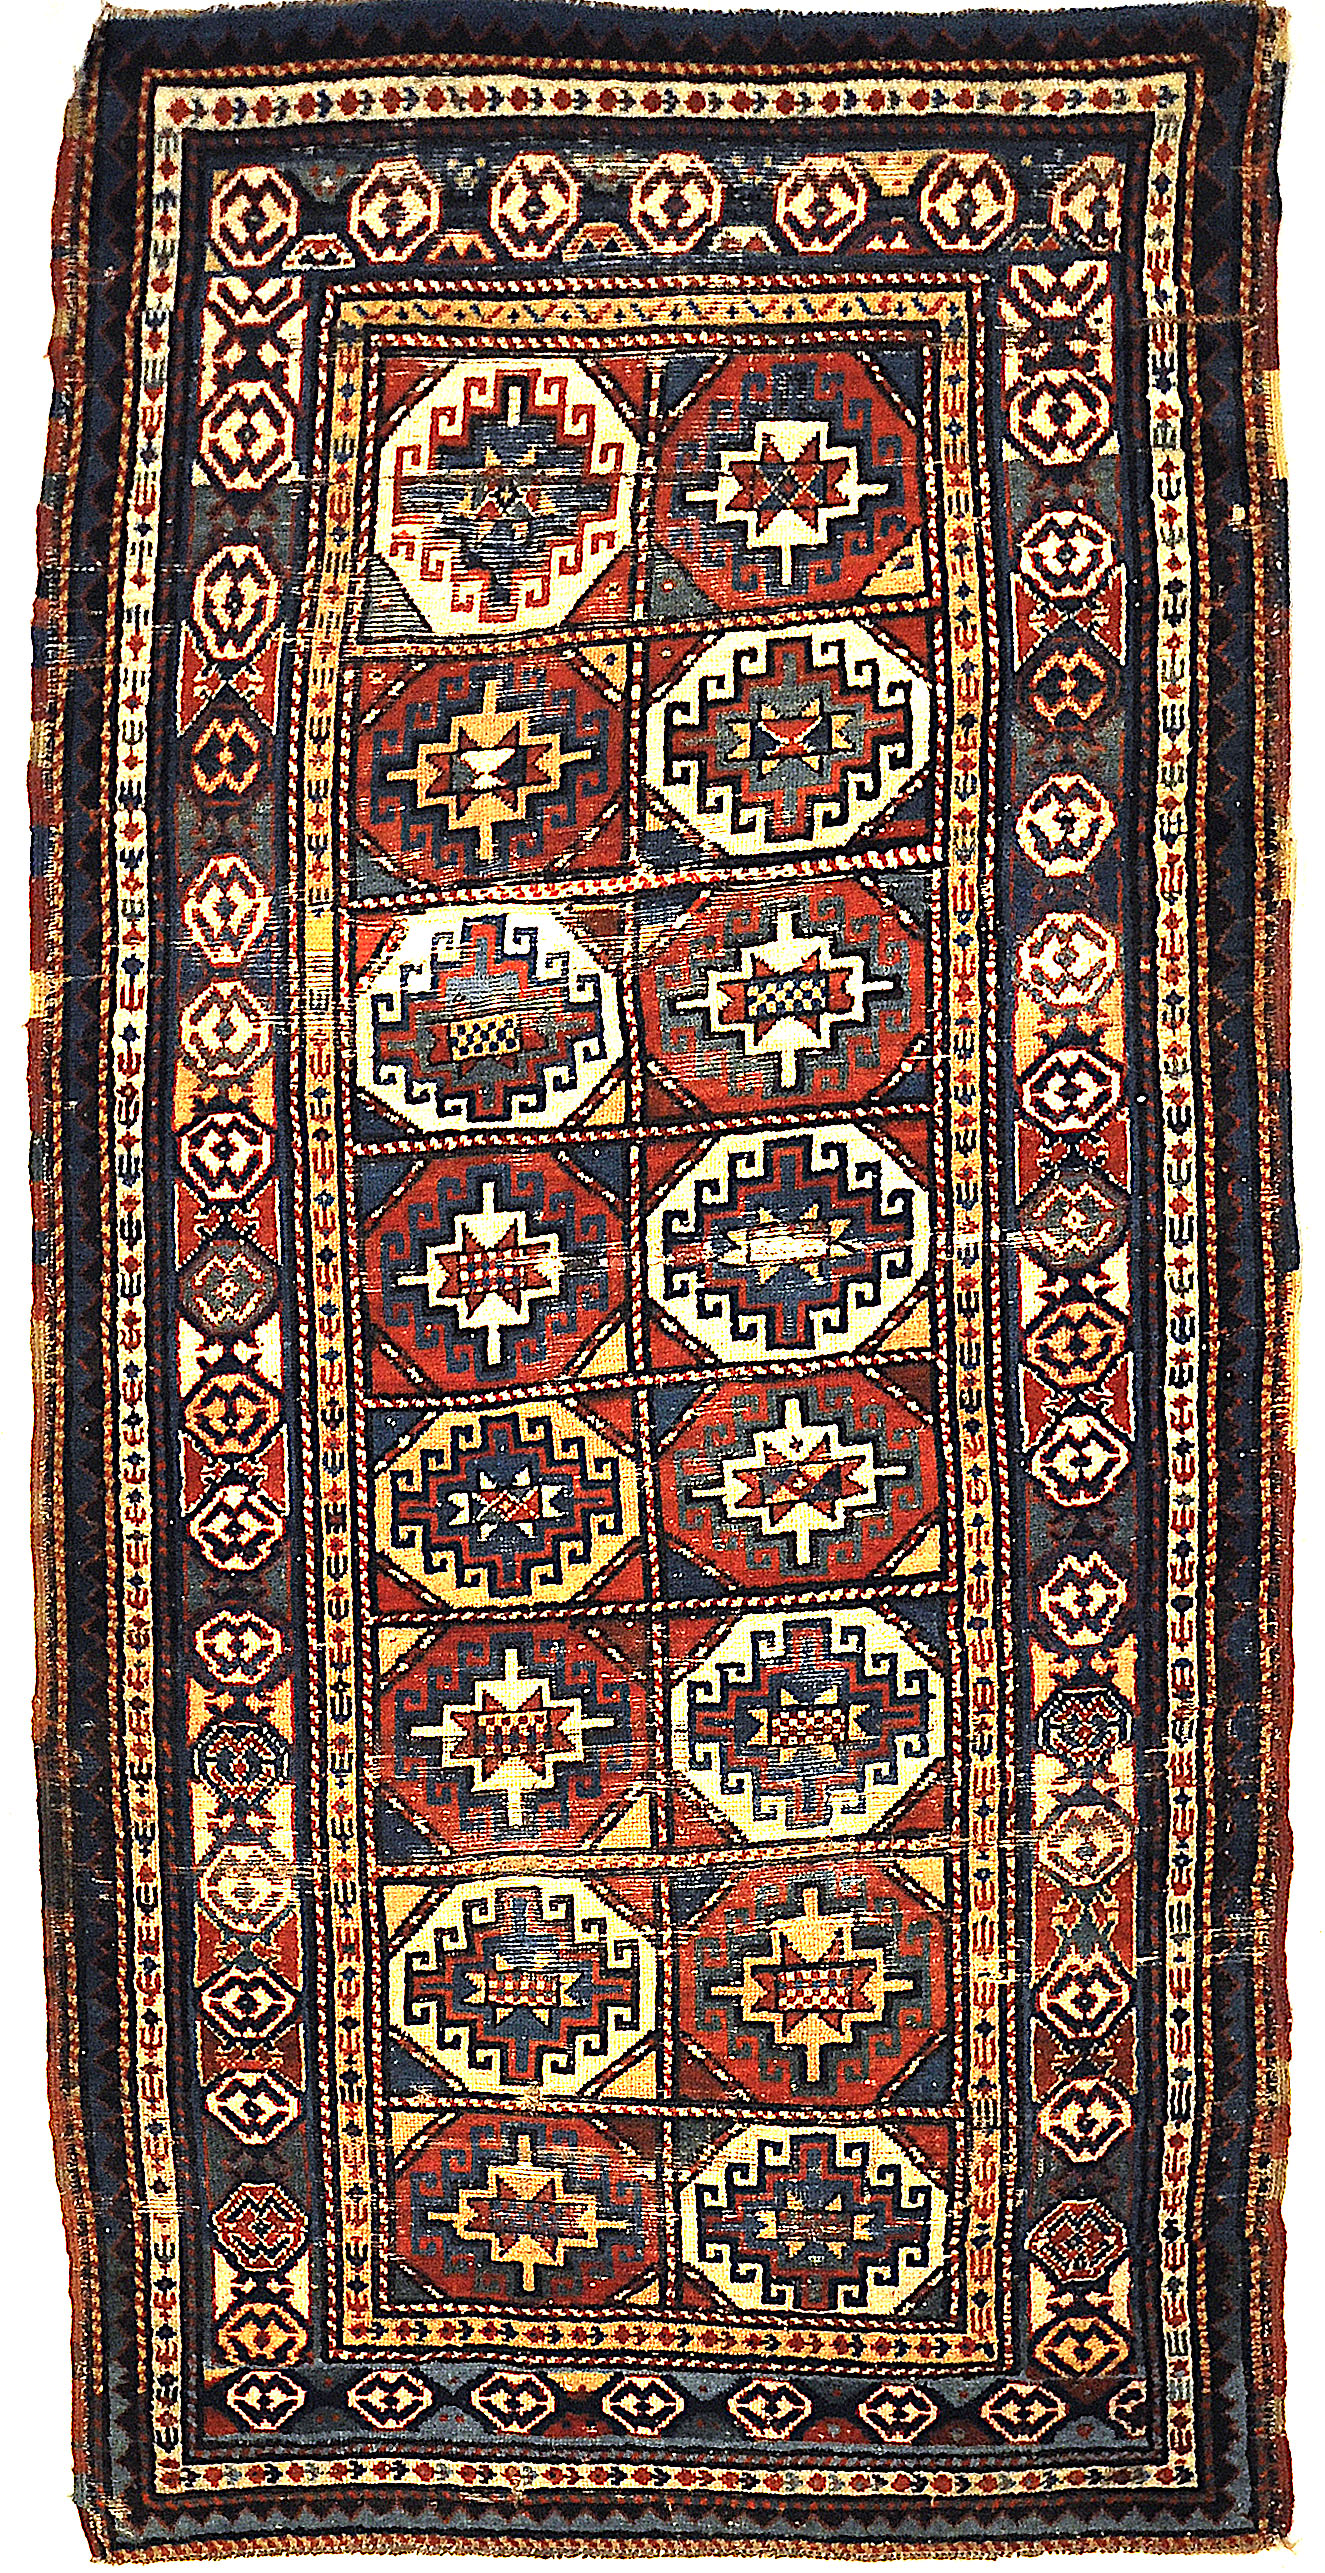 The finest antique Gendje rug. A piece of genuine Caucasian woven carpet art. Sold at Santa Barbara Design Center, Rugs and More.